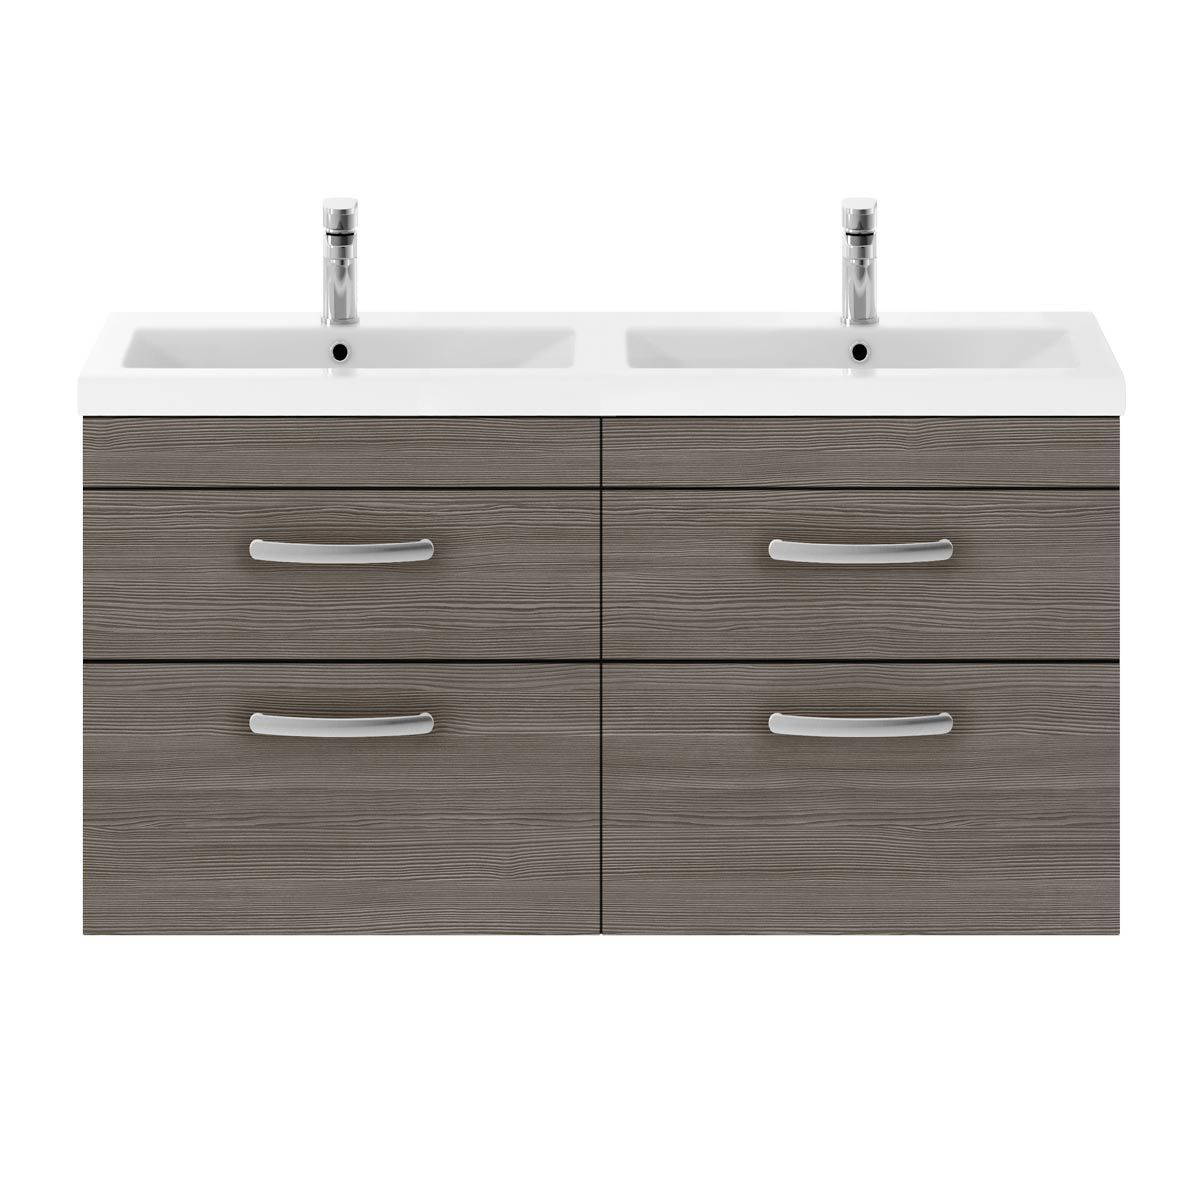 Nuie Athena Brown Grey Avola 4 Drawer Wall Hung Vanity Unit with Ceramic Double Basin 1200mm